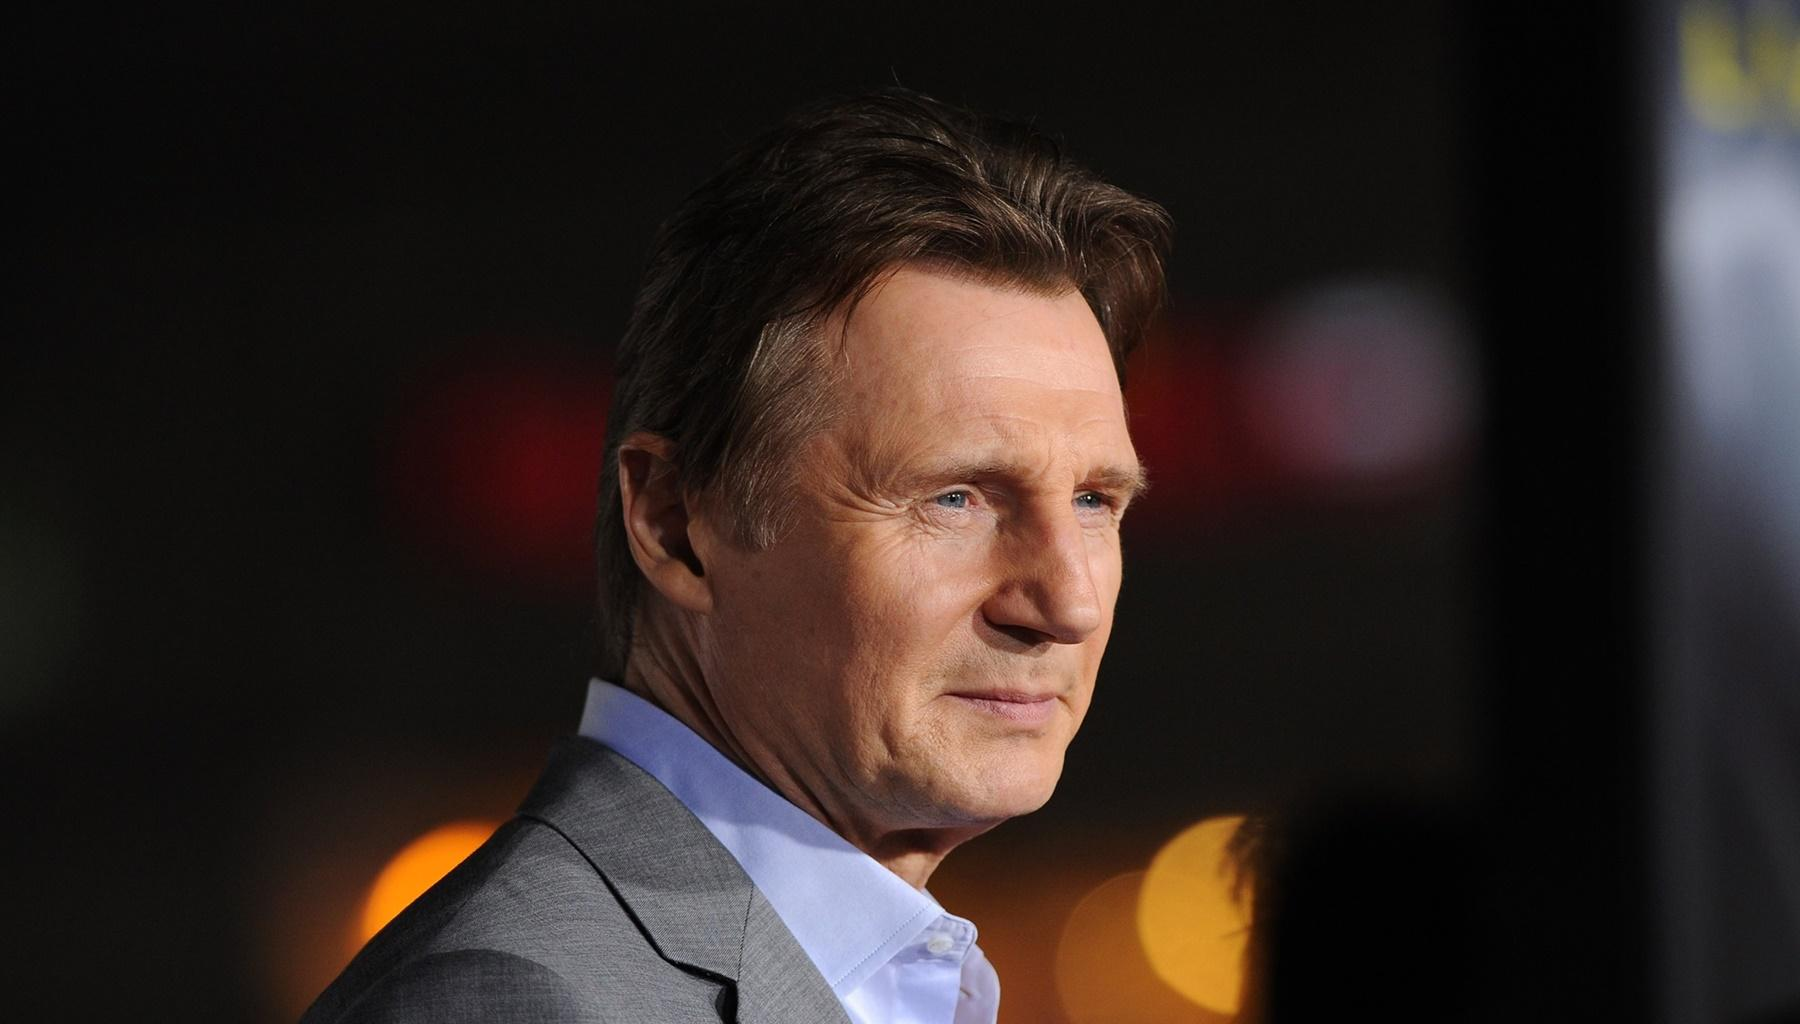 Liam Neeson Cancels TV Appearance After Admitting He Wanted To Kill A Random Black Man After Friend's Rape: Can His Career Recover After Confessing To Some Racist Tendencies?